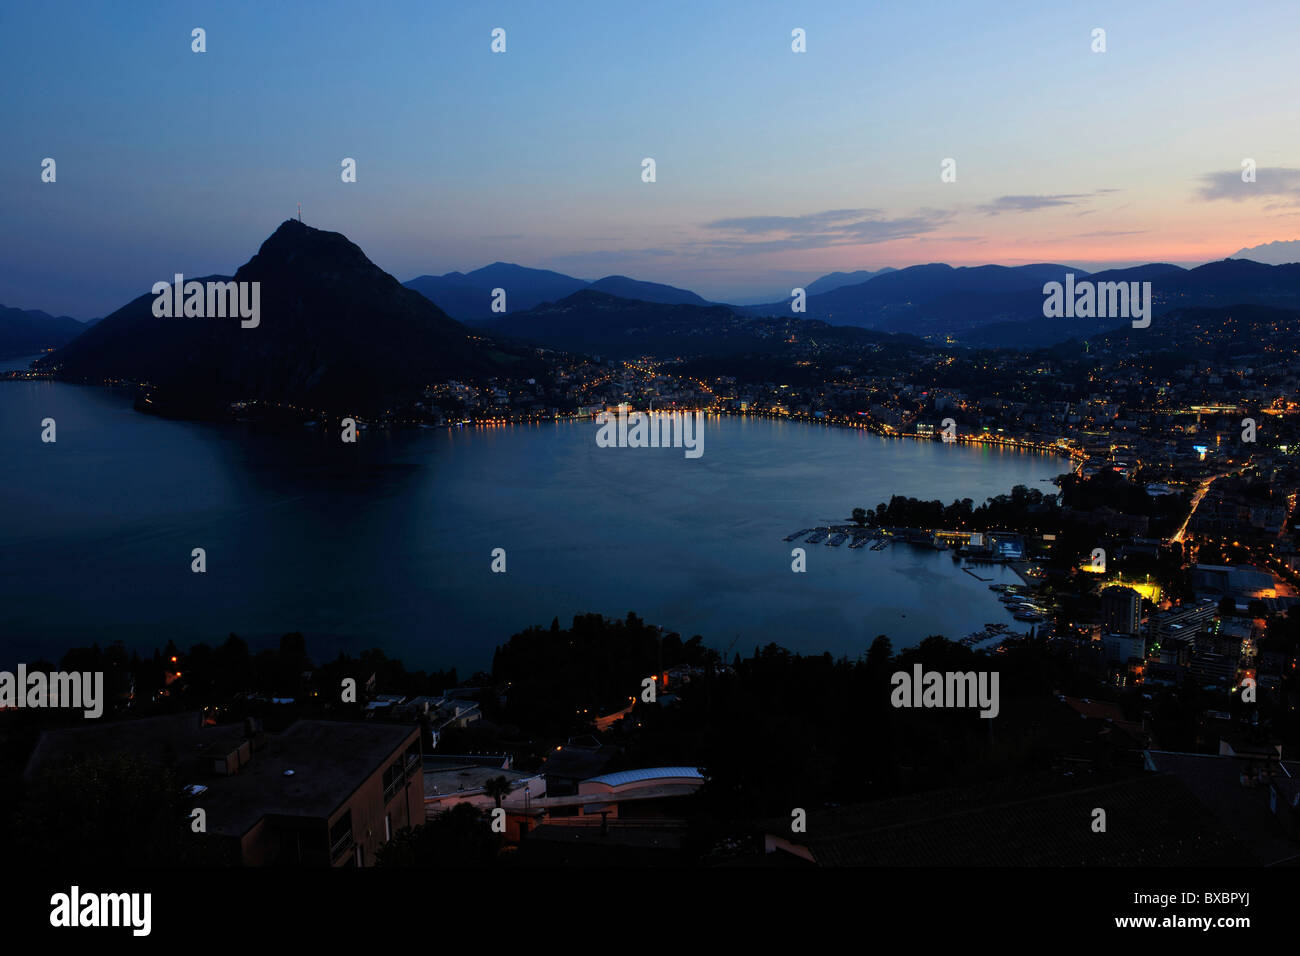 Lugano with San Salvatore mountain on Lago di Lugano, Lake Lugano, Canton of Ticino, Switzerland, Europe Stock Photo